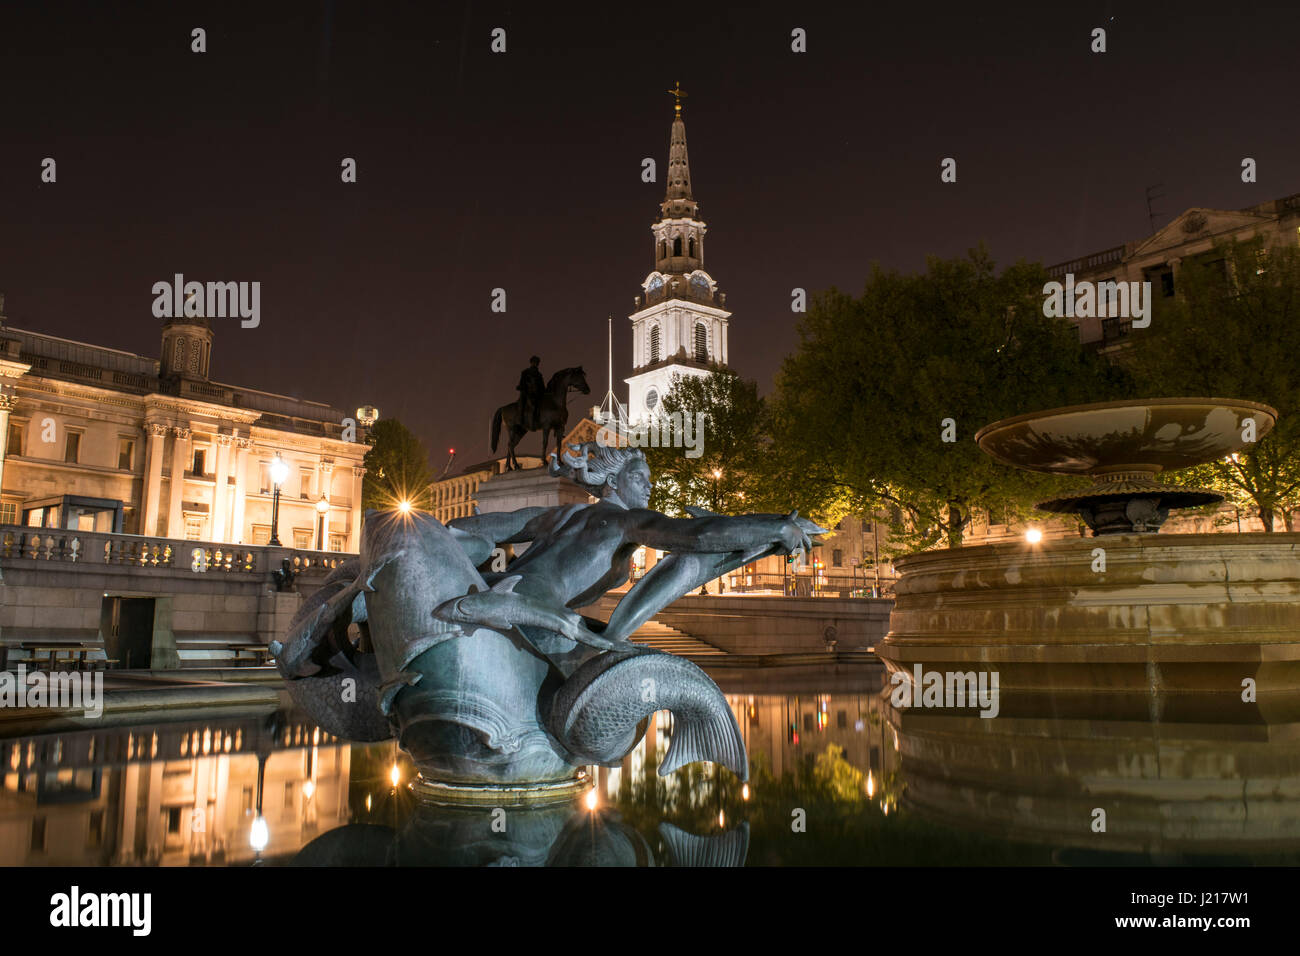 Trafalgar Square by Night. April 2017, London, UK - Stock Image